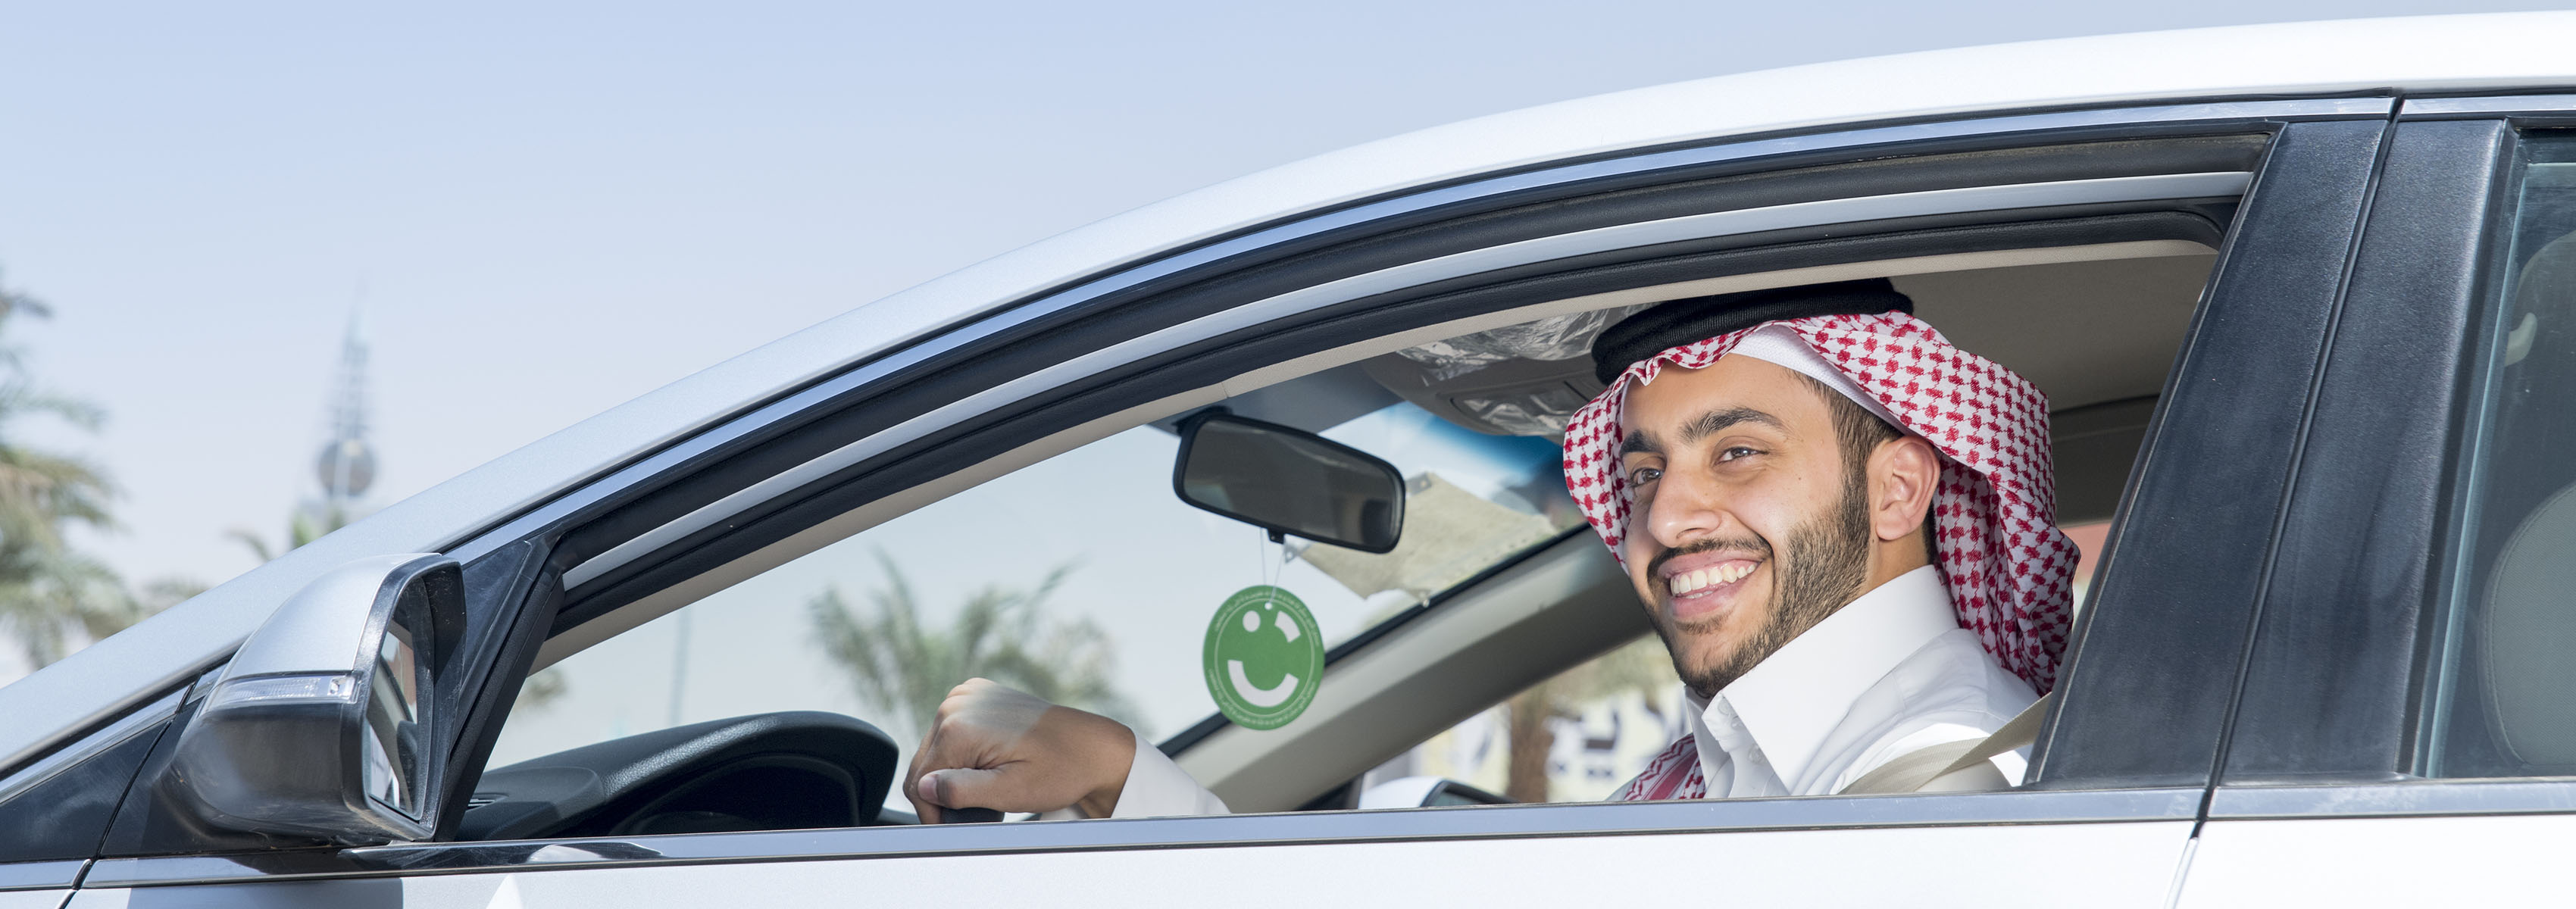 Careem captain